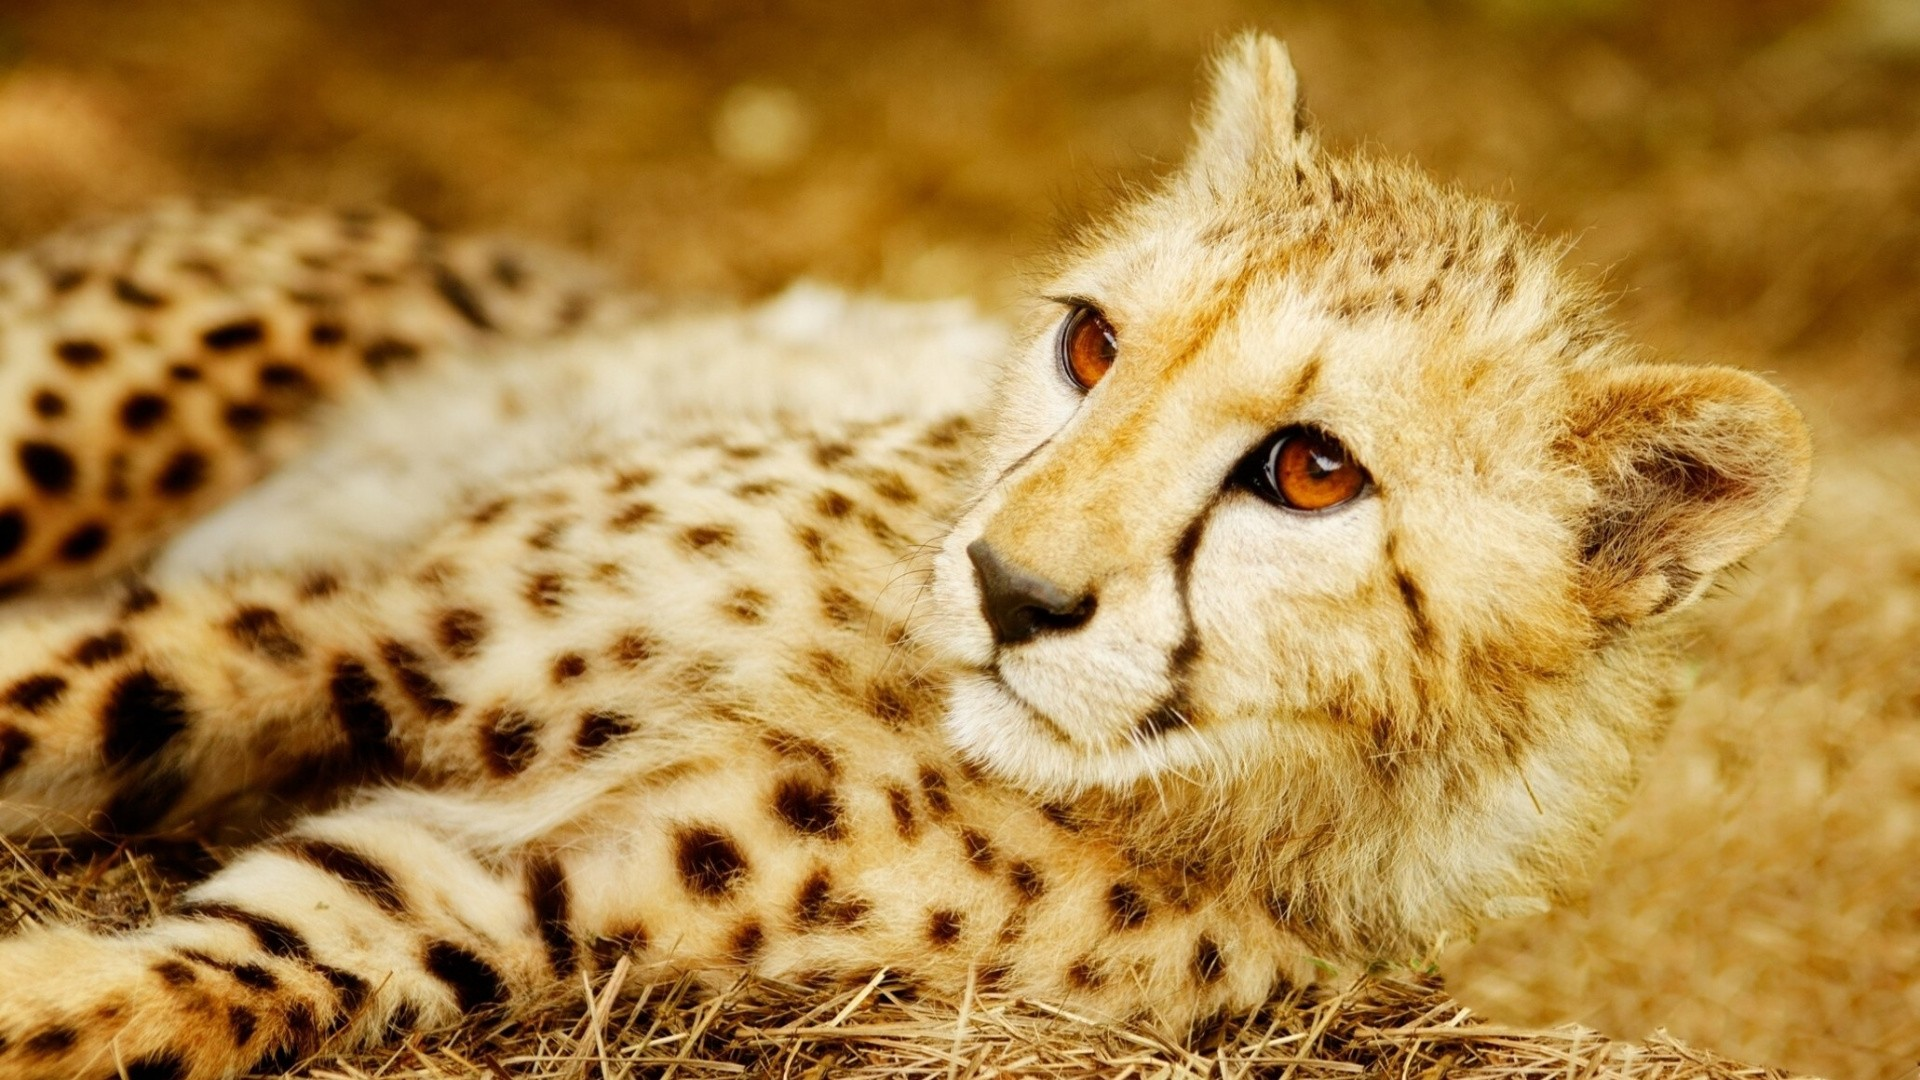 Cheetah HD Wallpaper